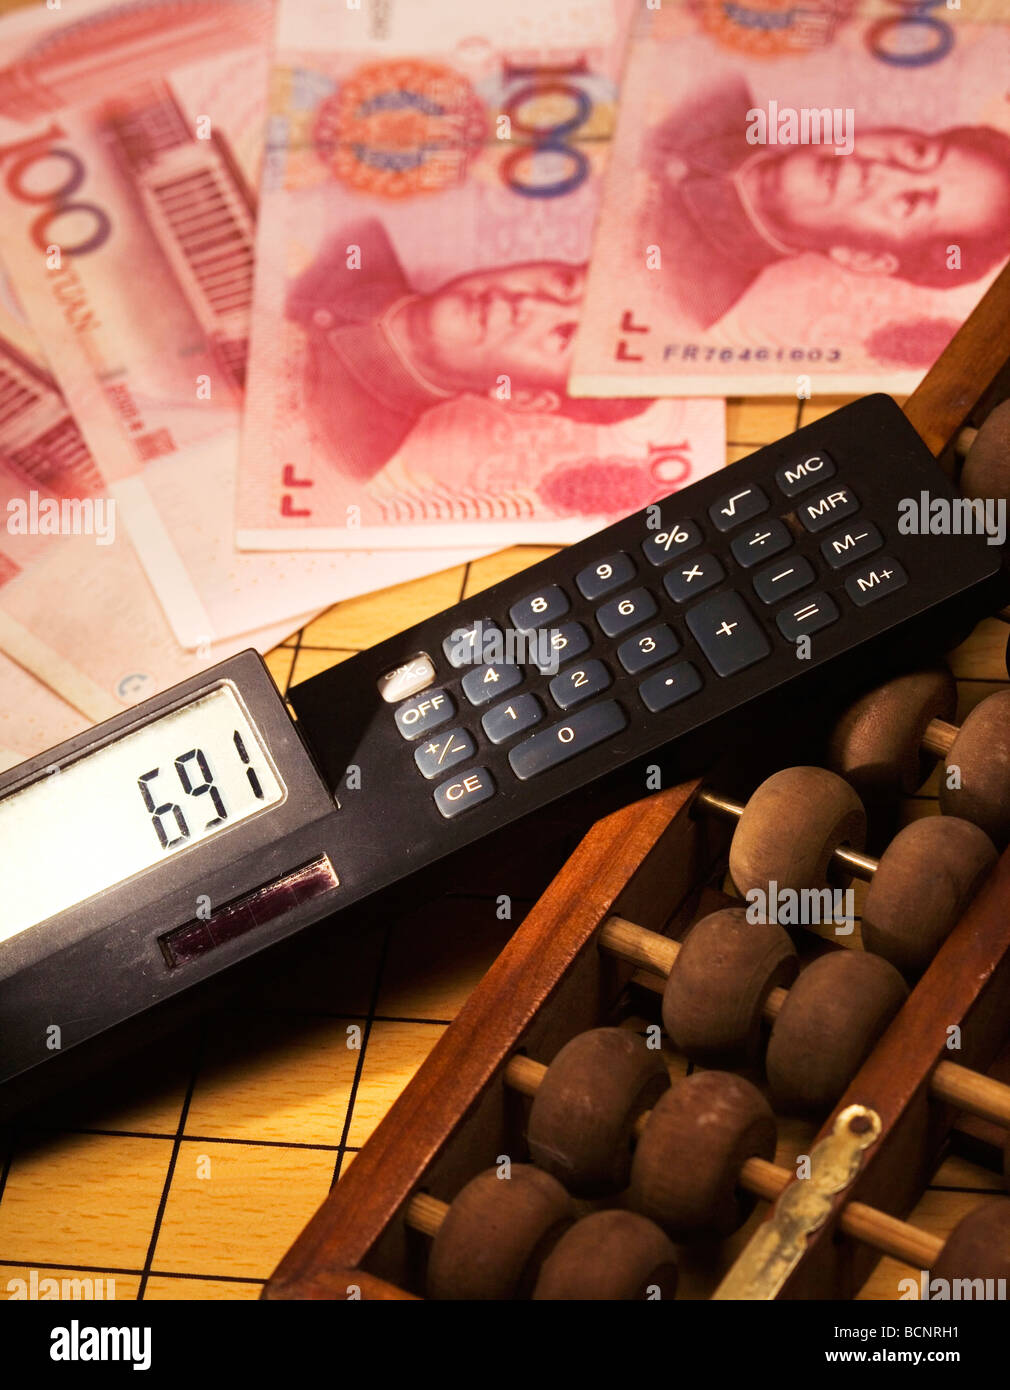 Chinese traditional calculator abacus and modern calculator with one hundred Chinese RMB bills - Stock Image